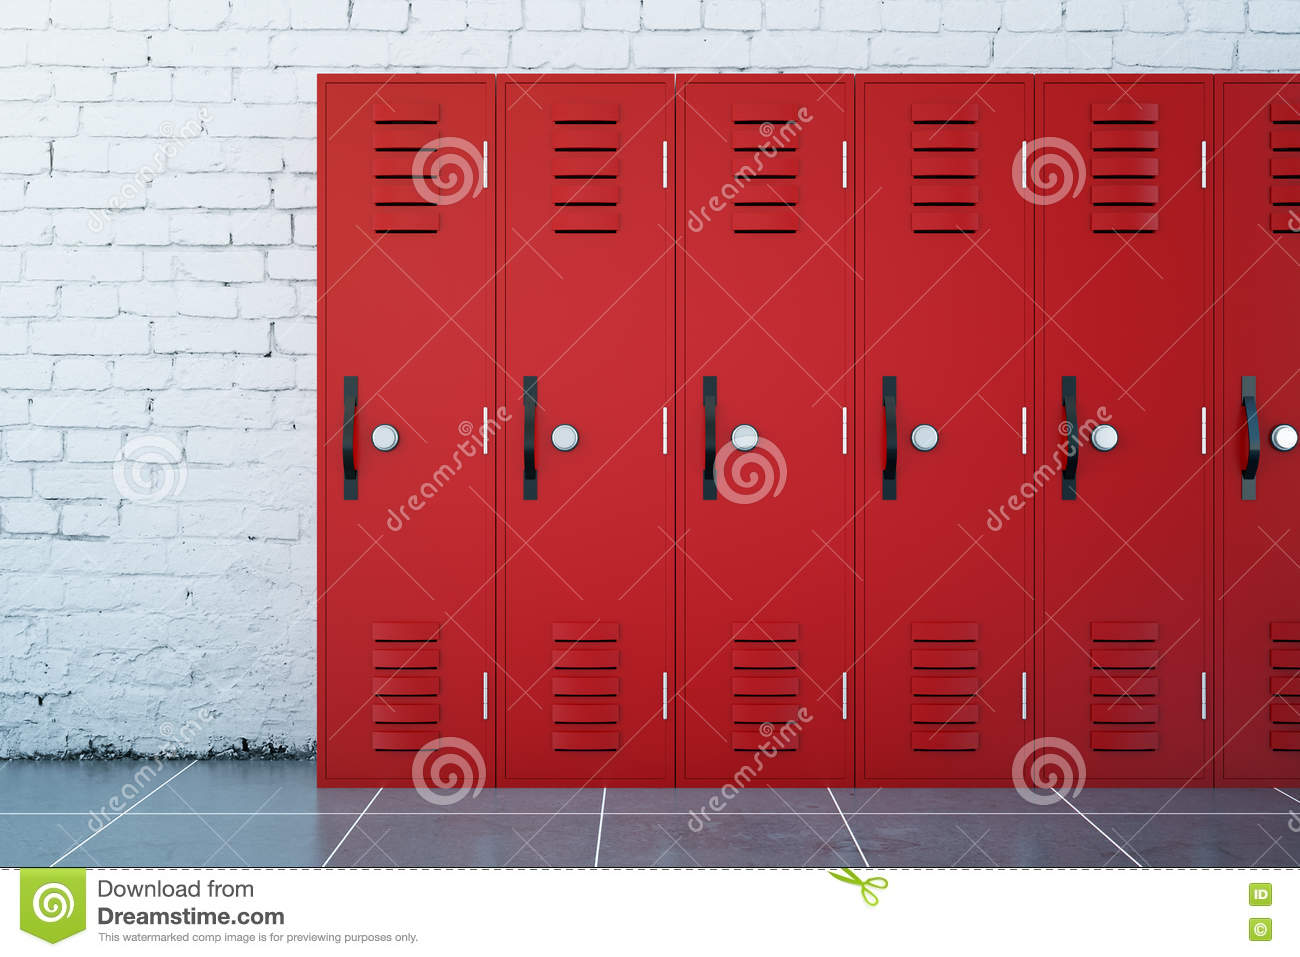 Lockers Stock Illustrations U2013 750 Lockers Stock Illustrations, Vectors U0026  Clipart   Dreamstime